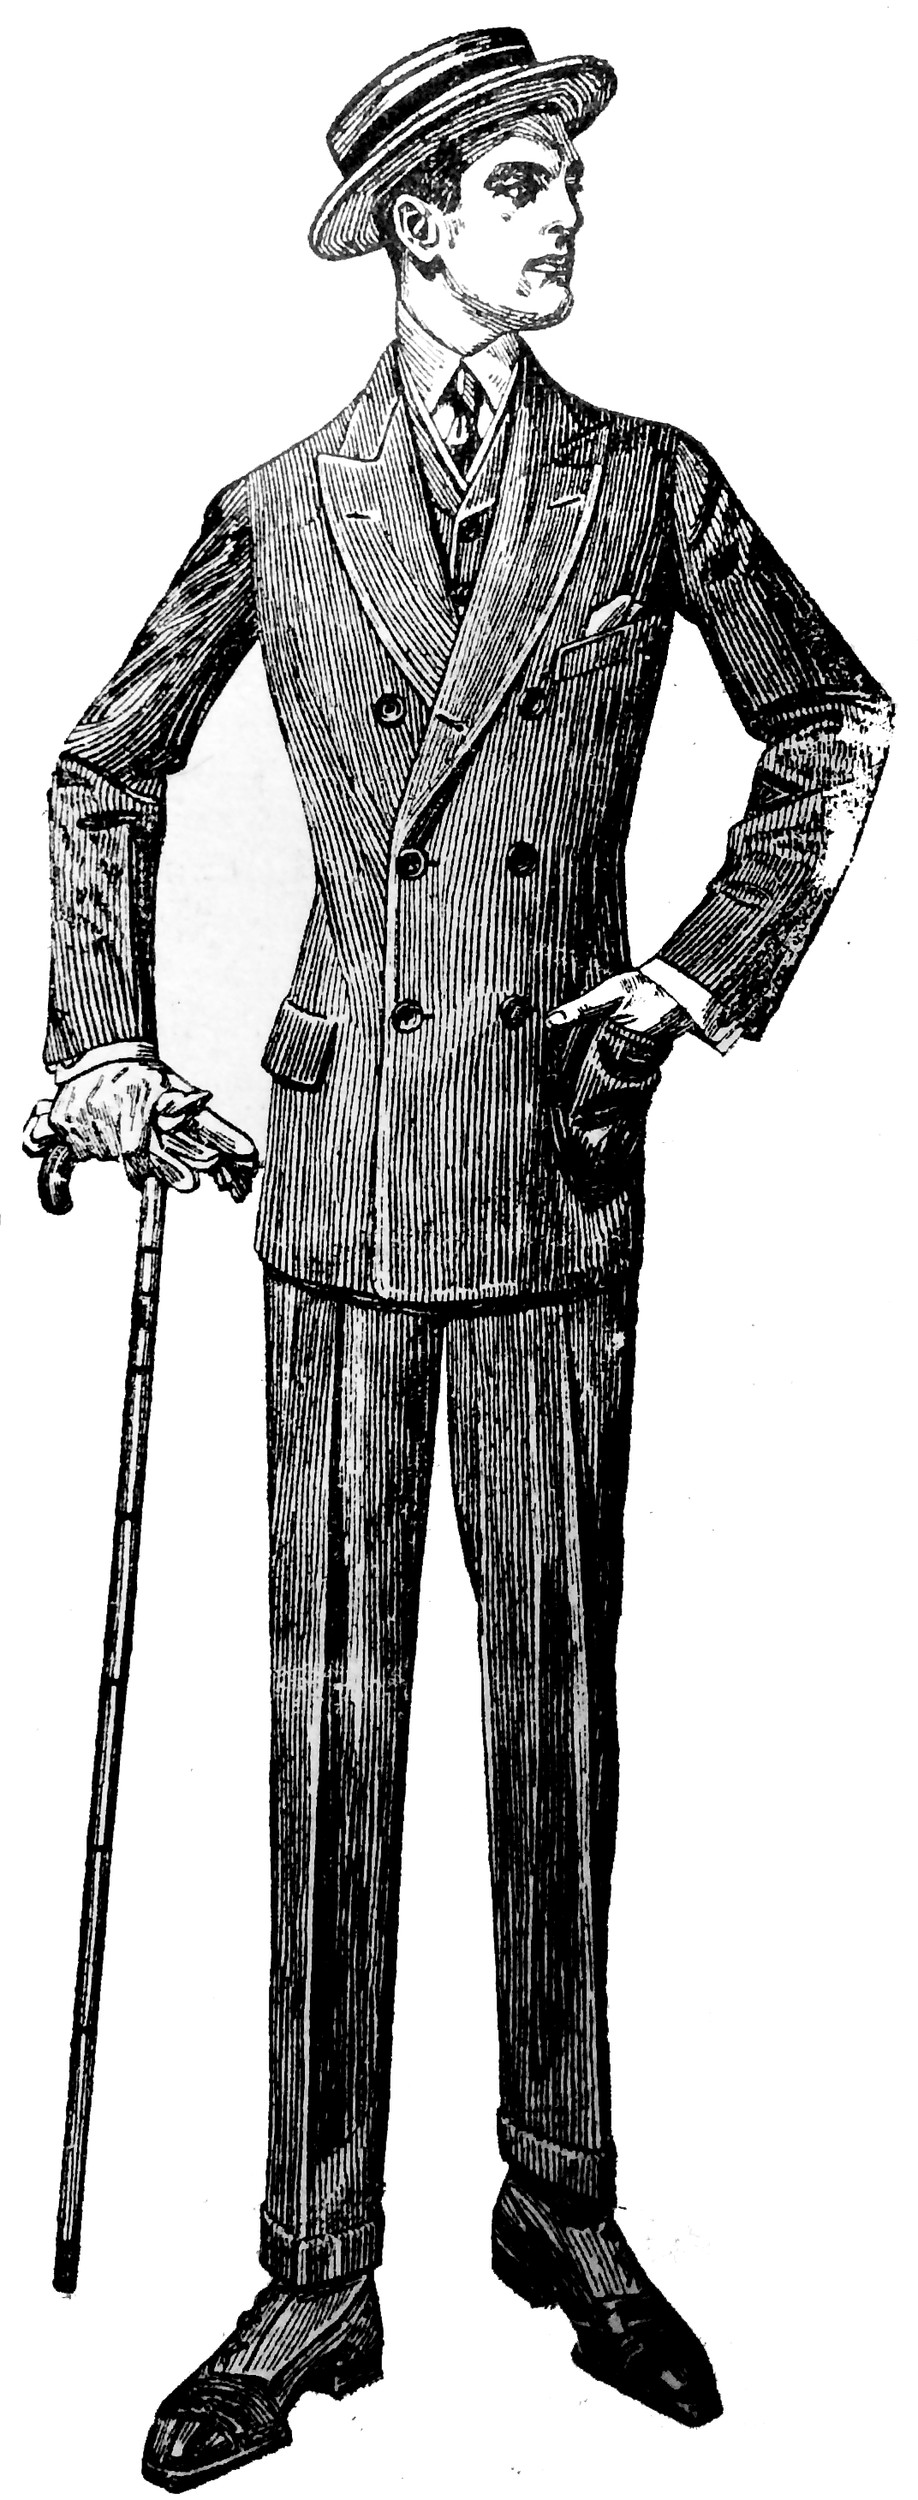 "Editor's note from Jason Maddux, 2017: Very few images appeared in newspapers from this era. There were almost all in advertisements. This images was for Kuppenheimer Clothes, sold by Doutrich, ""Middletown's leading clothier."" Suits ranged from $15 to $25. As was the custom, most ads did not include an address for the business. Telephone numbers, if businesses had them in 1913, also were rarely included."